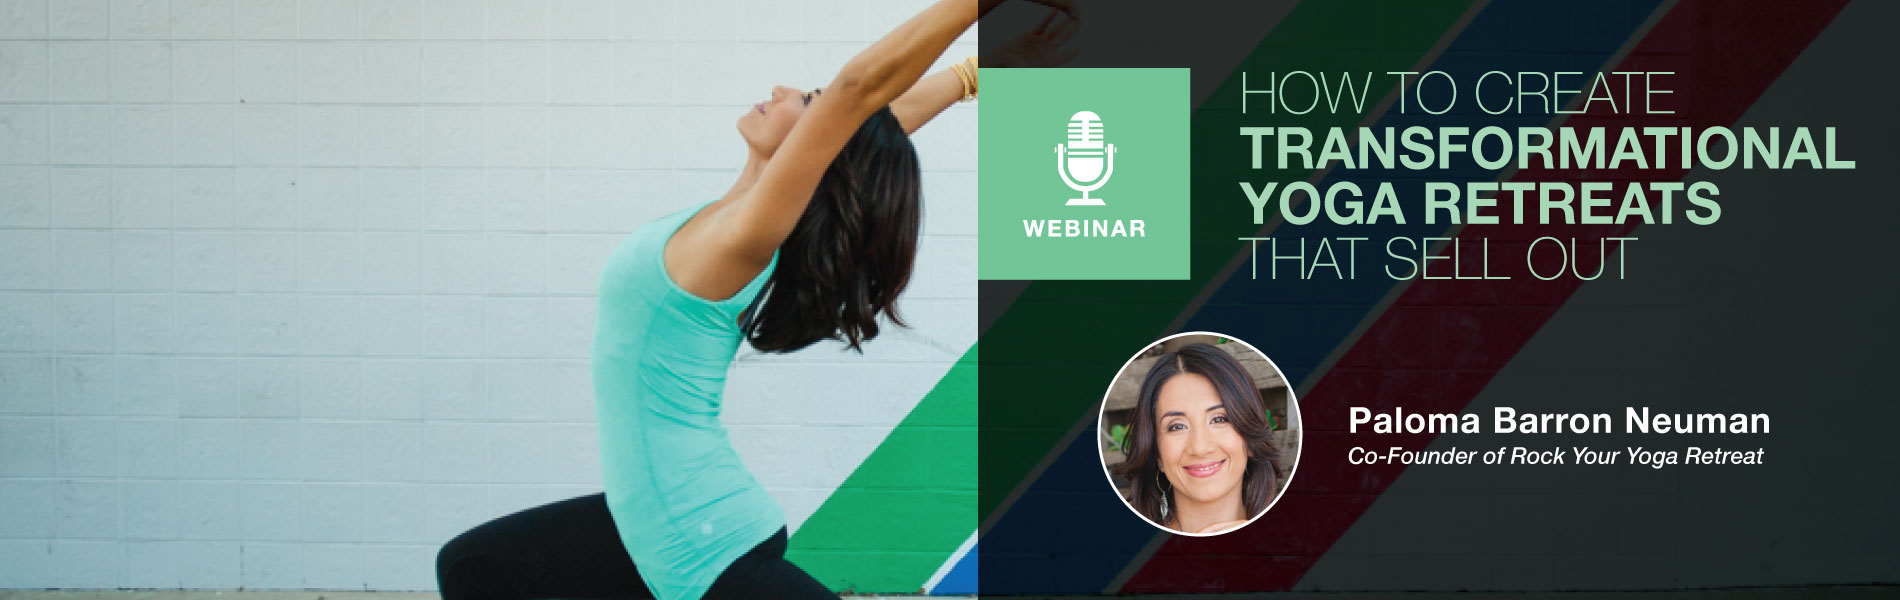 [Webinar] How to Create Transformational Yoga Retreats that Sell Out | PerfectMind